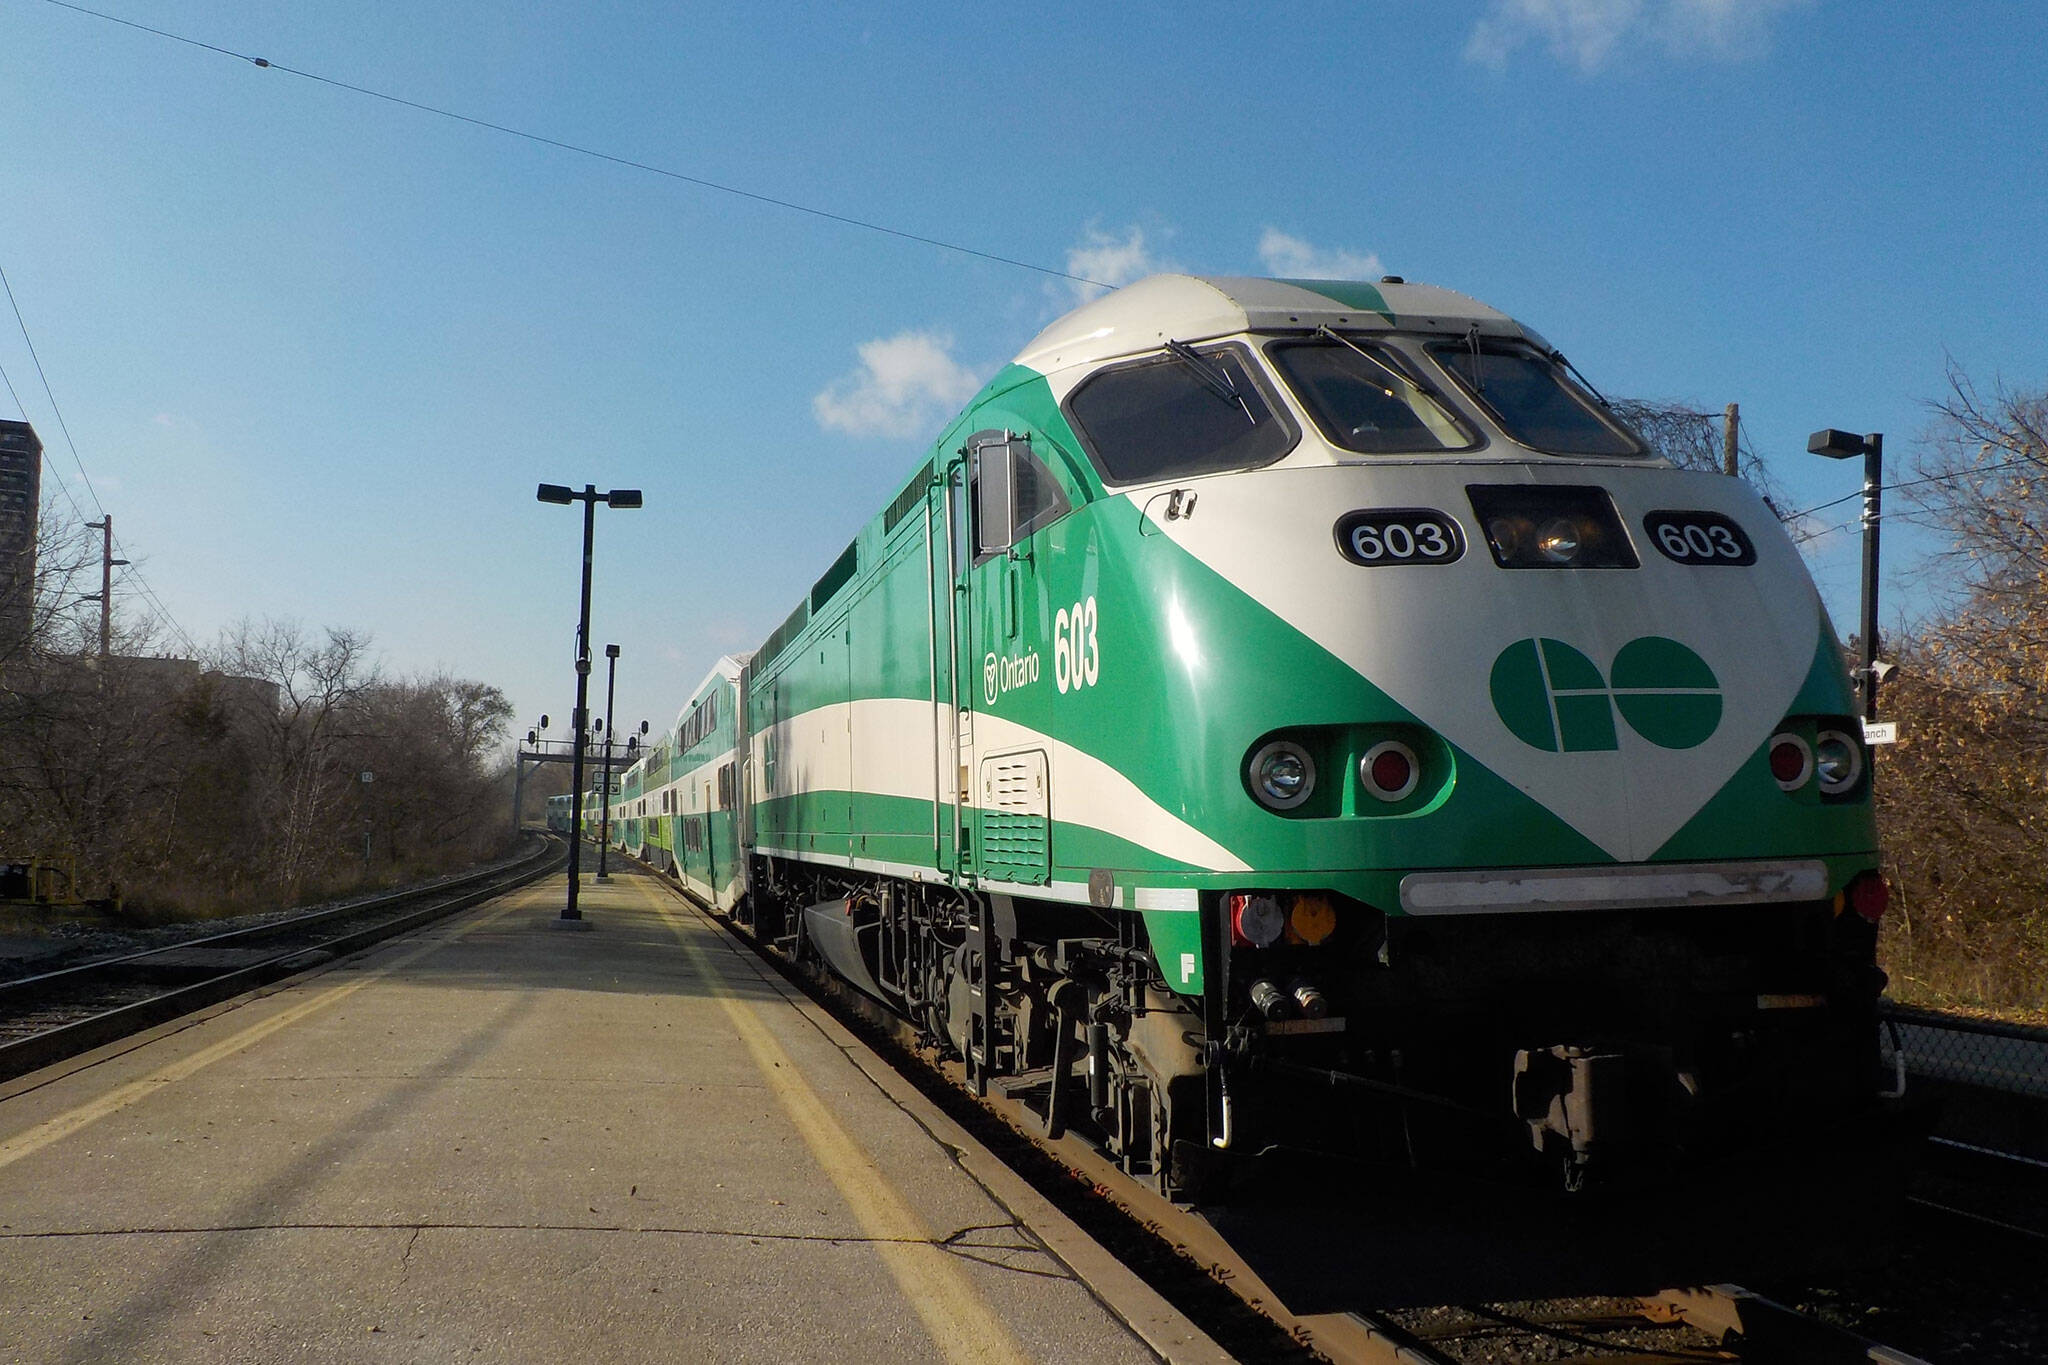 15,000 people just got stuck on GO Trains heading to Toronto